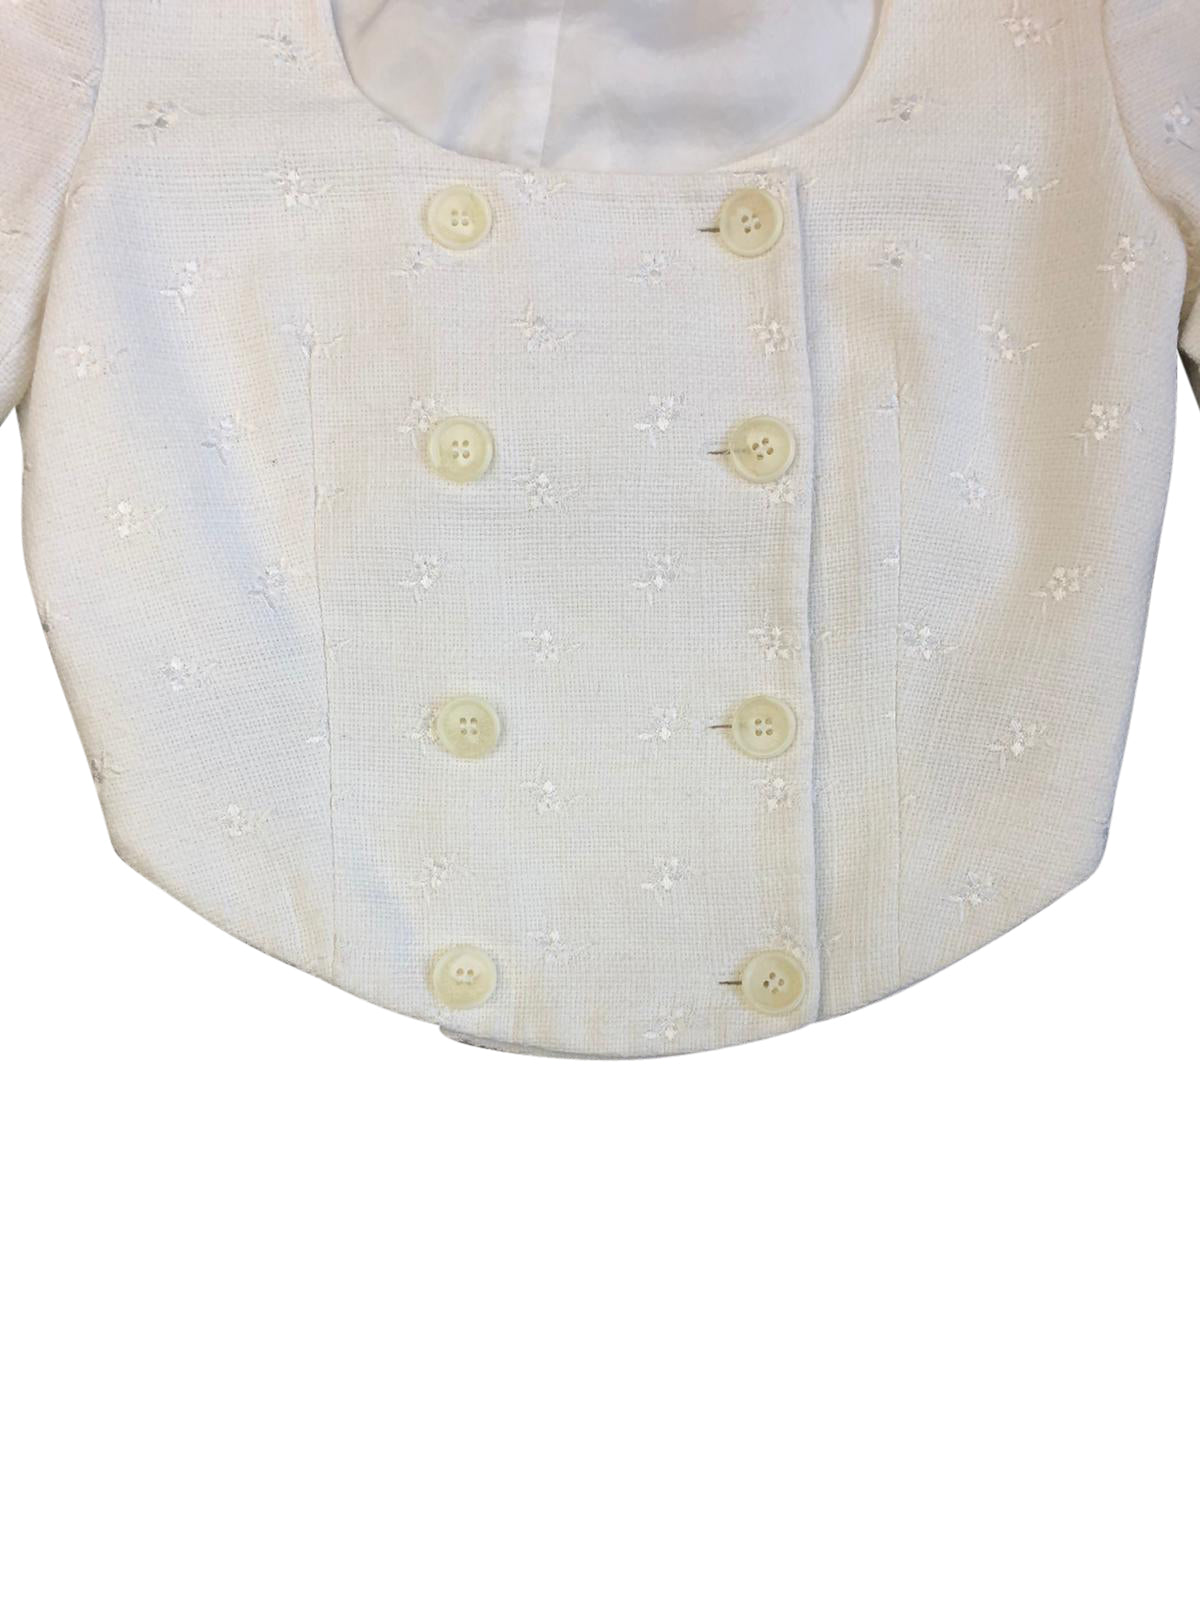 Valentino Oliver Button Up Top (White) UK 6-8